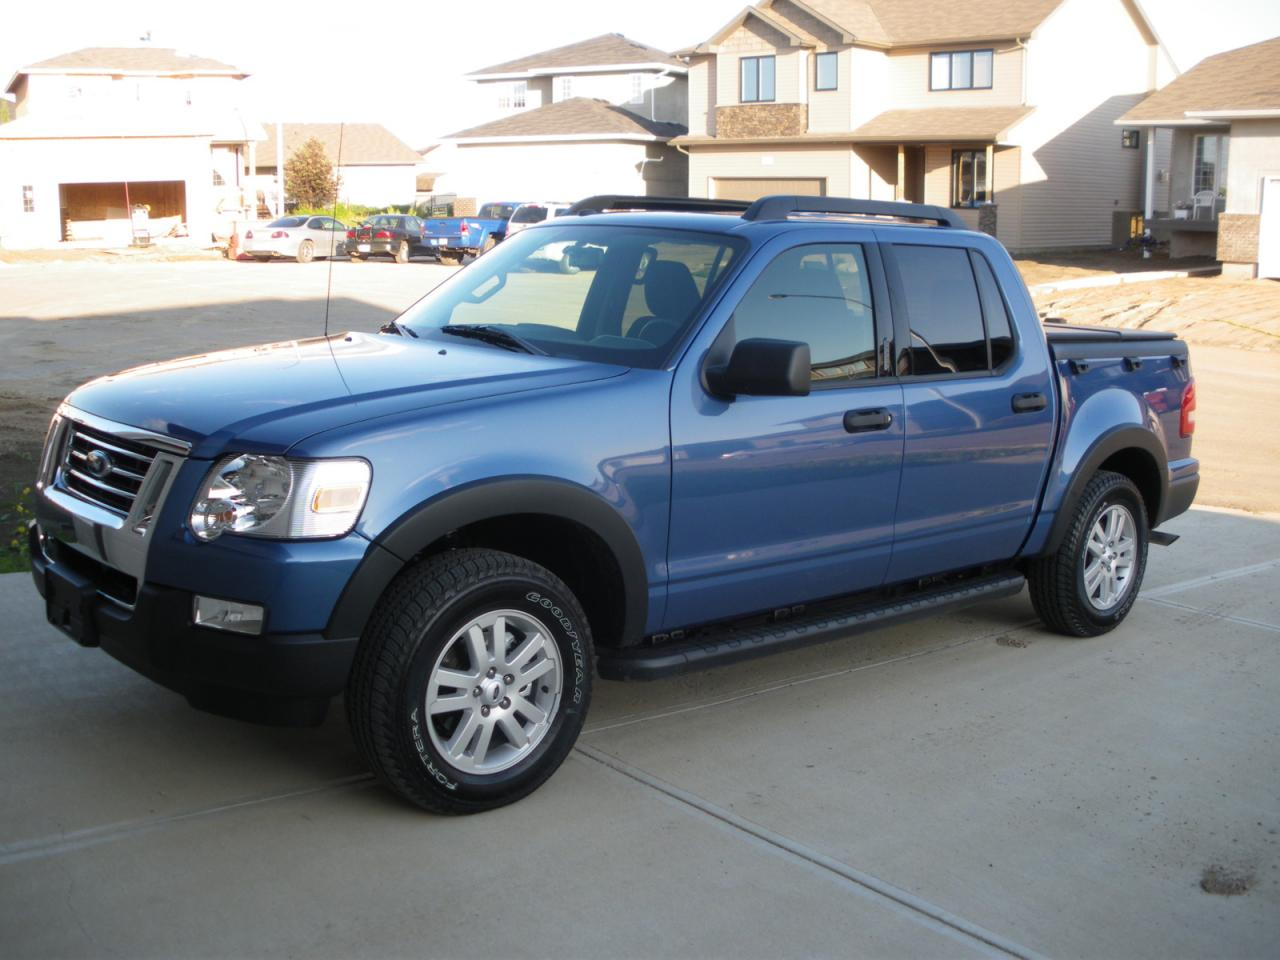 2005 ford explorer sport trac information and photos zombiedrive. Black Bedroom Furniture Sets. Home Design Ideas